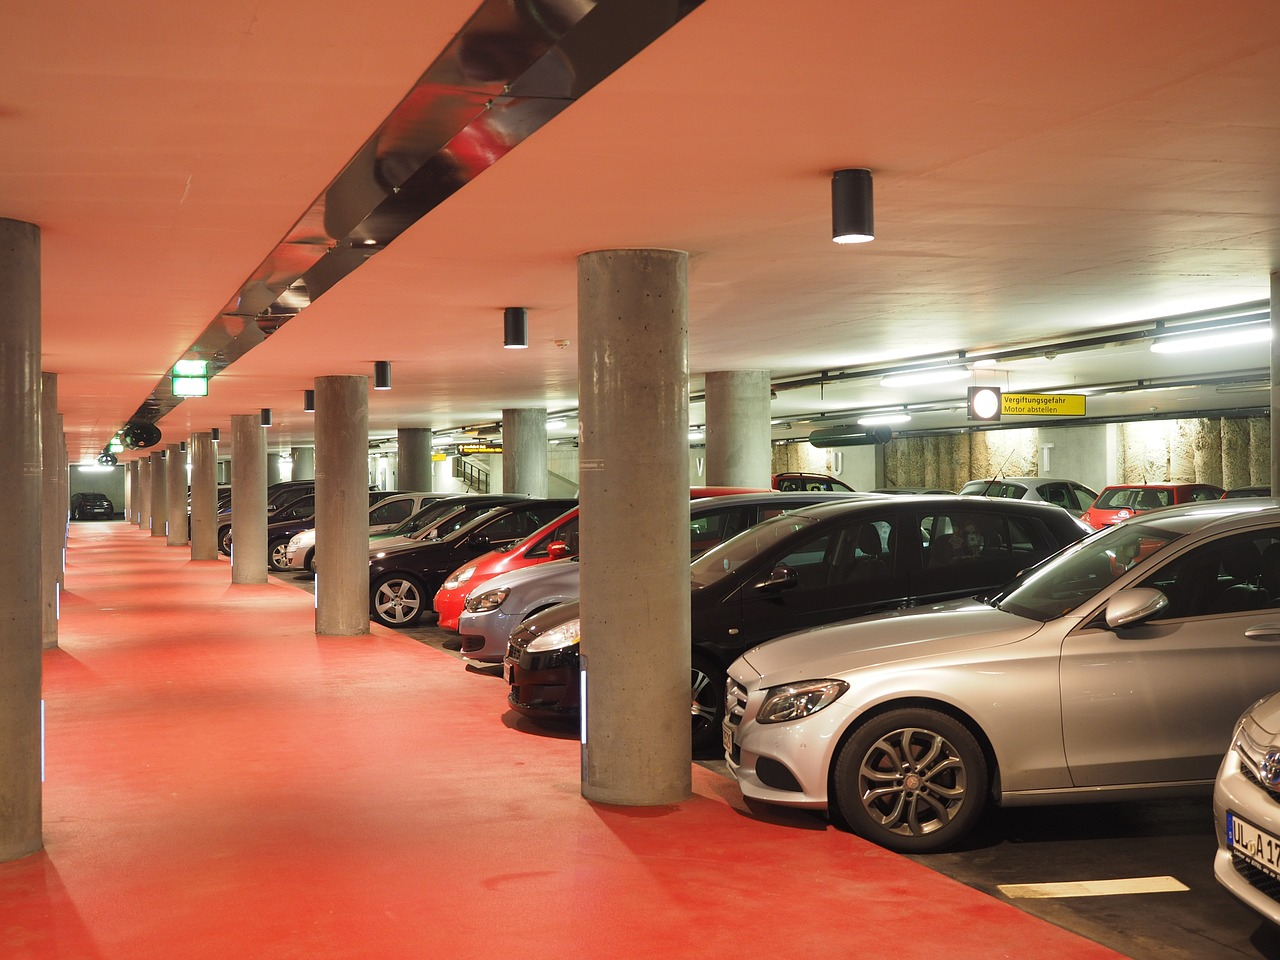 multi-storey-car-park-1271918_1280